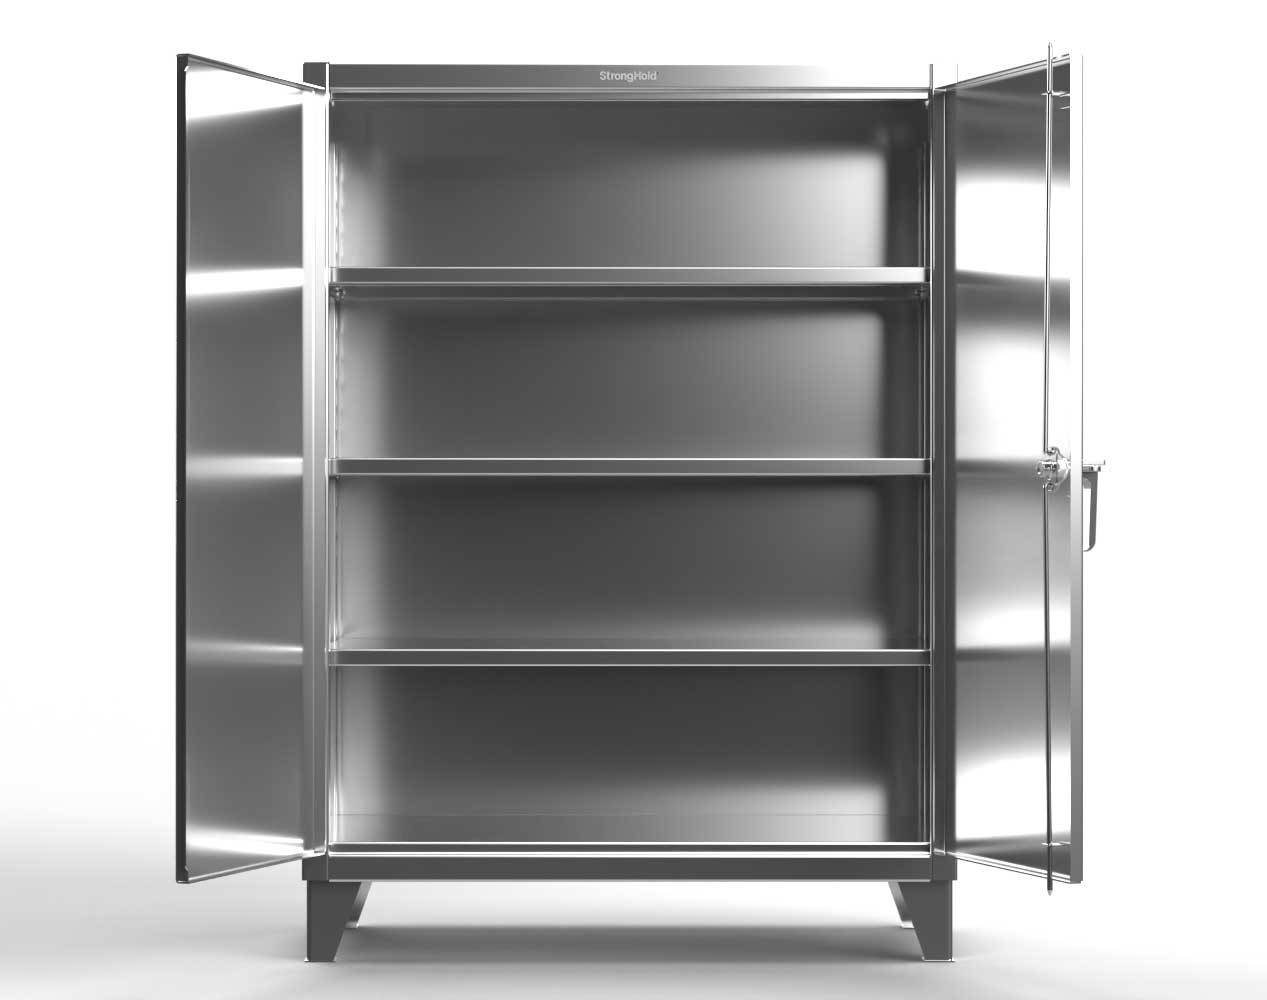 Extreme Duty 12 GA Stainless Steel Cabinet with 3 Shelves – 48 In. W x 24 In. D x 66 In. H